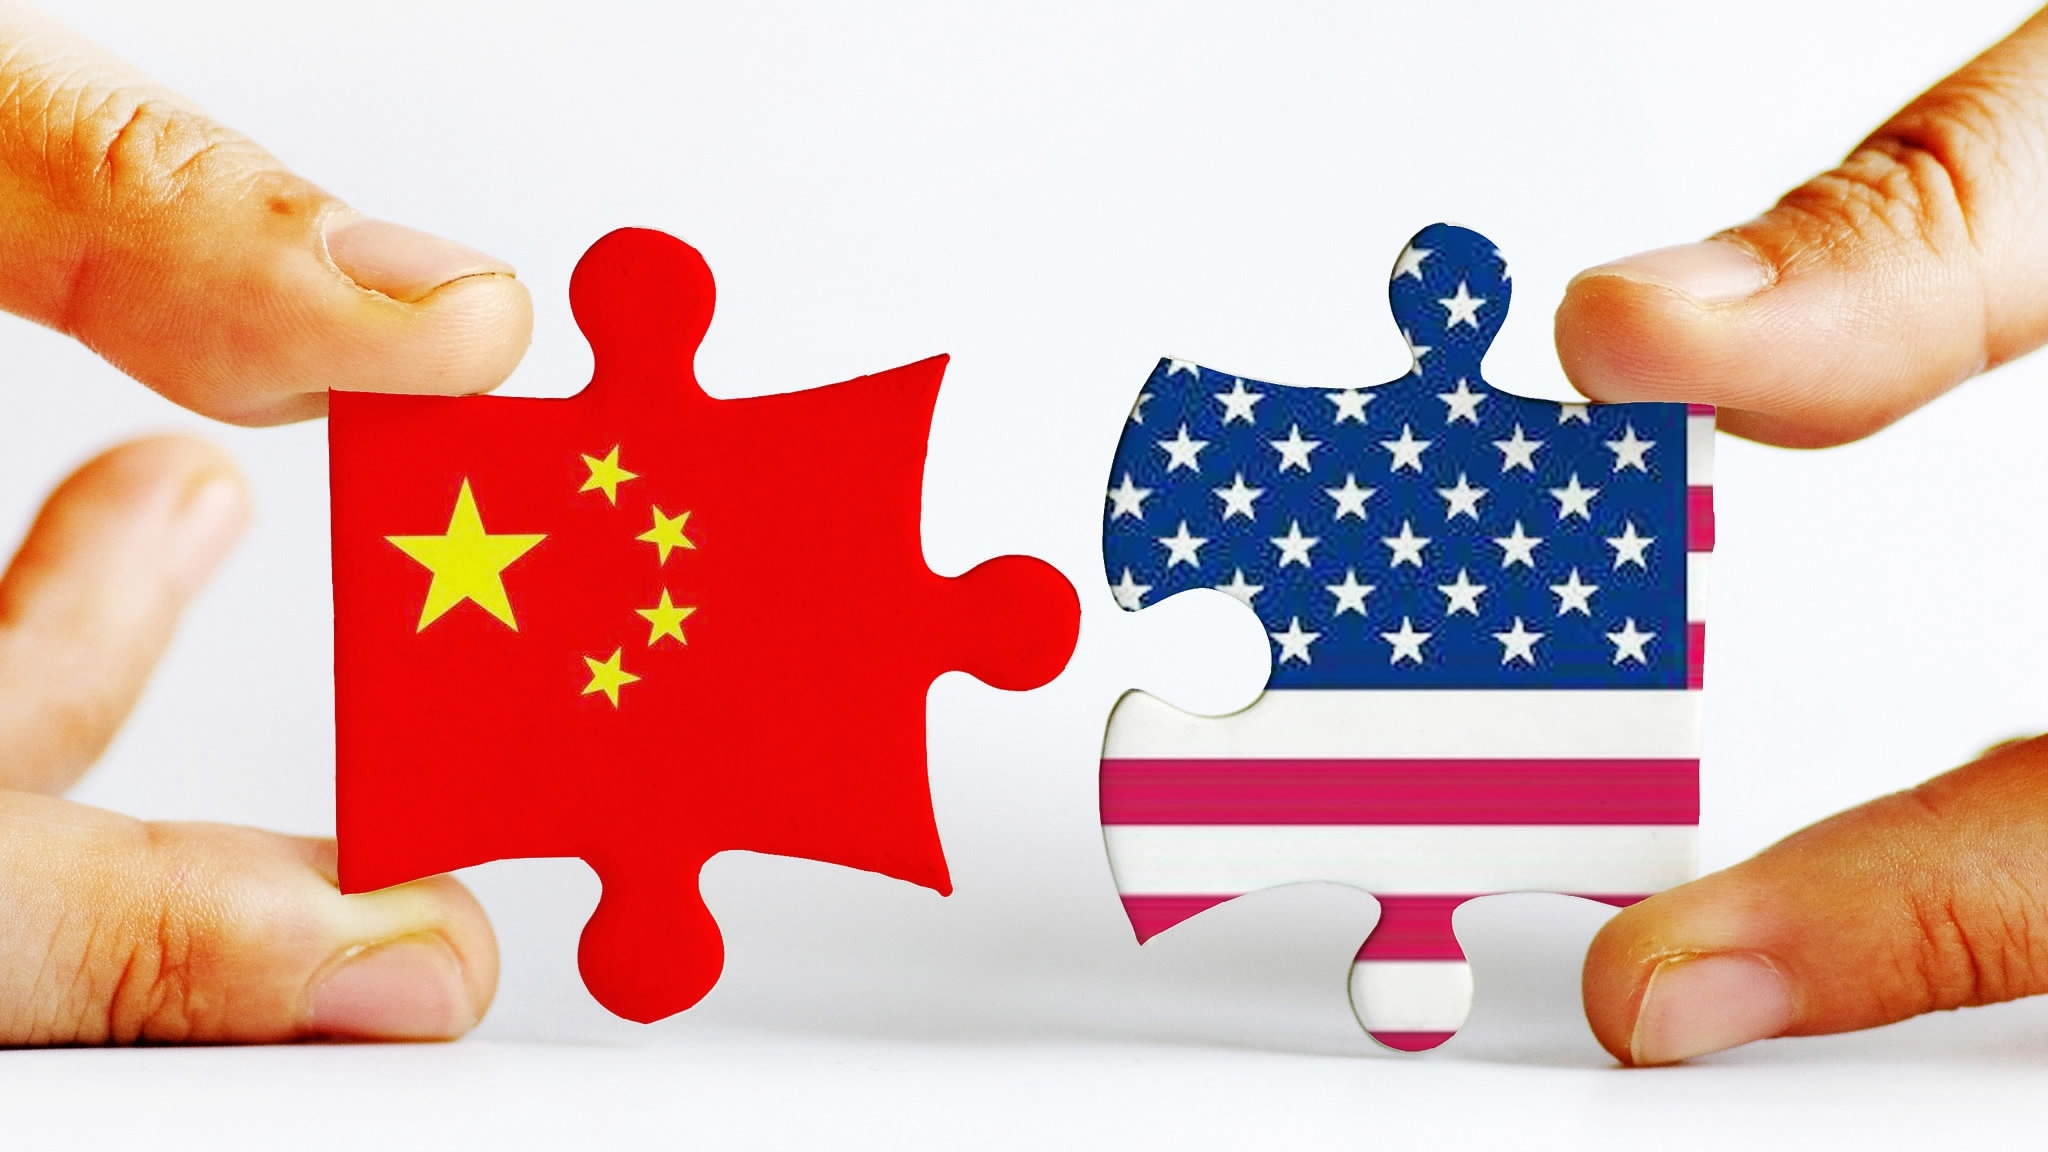 China deeply regrets US tariff hike, vows countermeasures: Chinese delegation